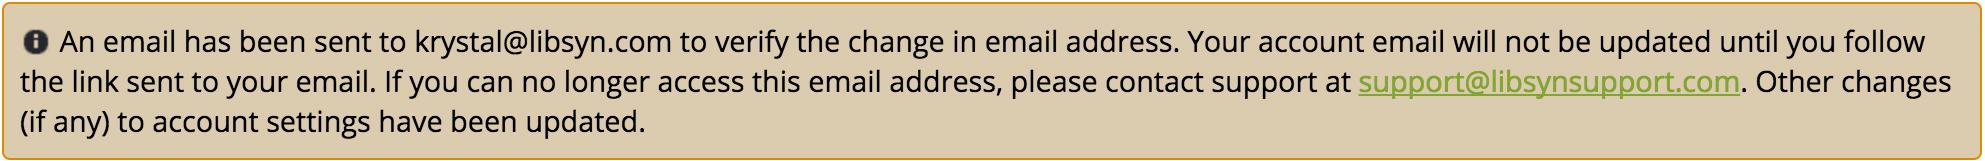 Confirming the E-Mail Change